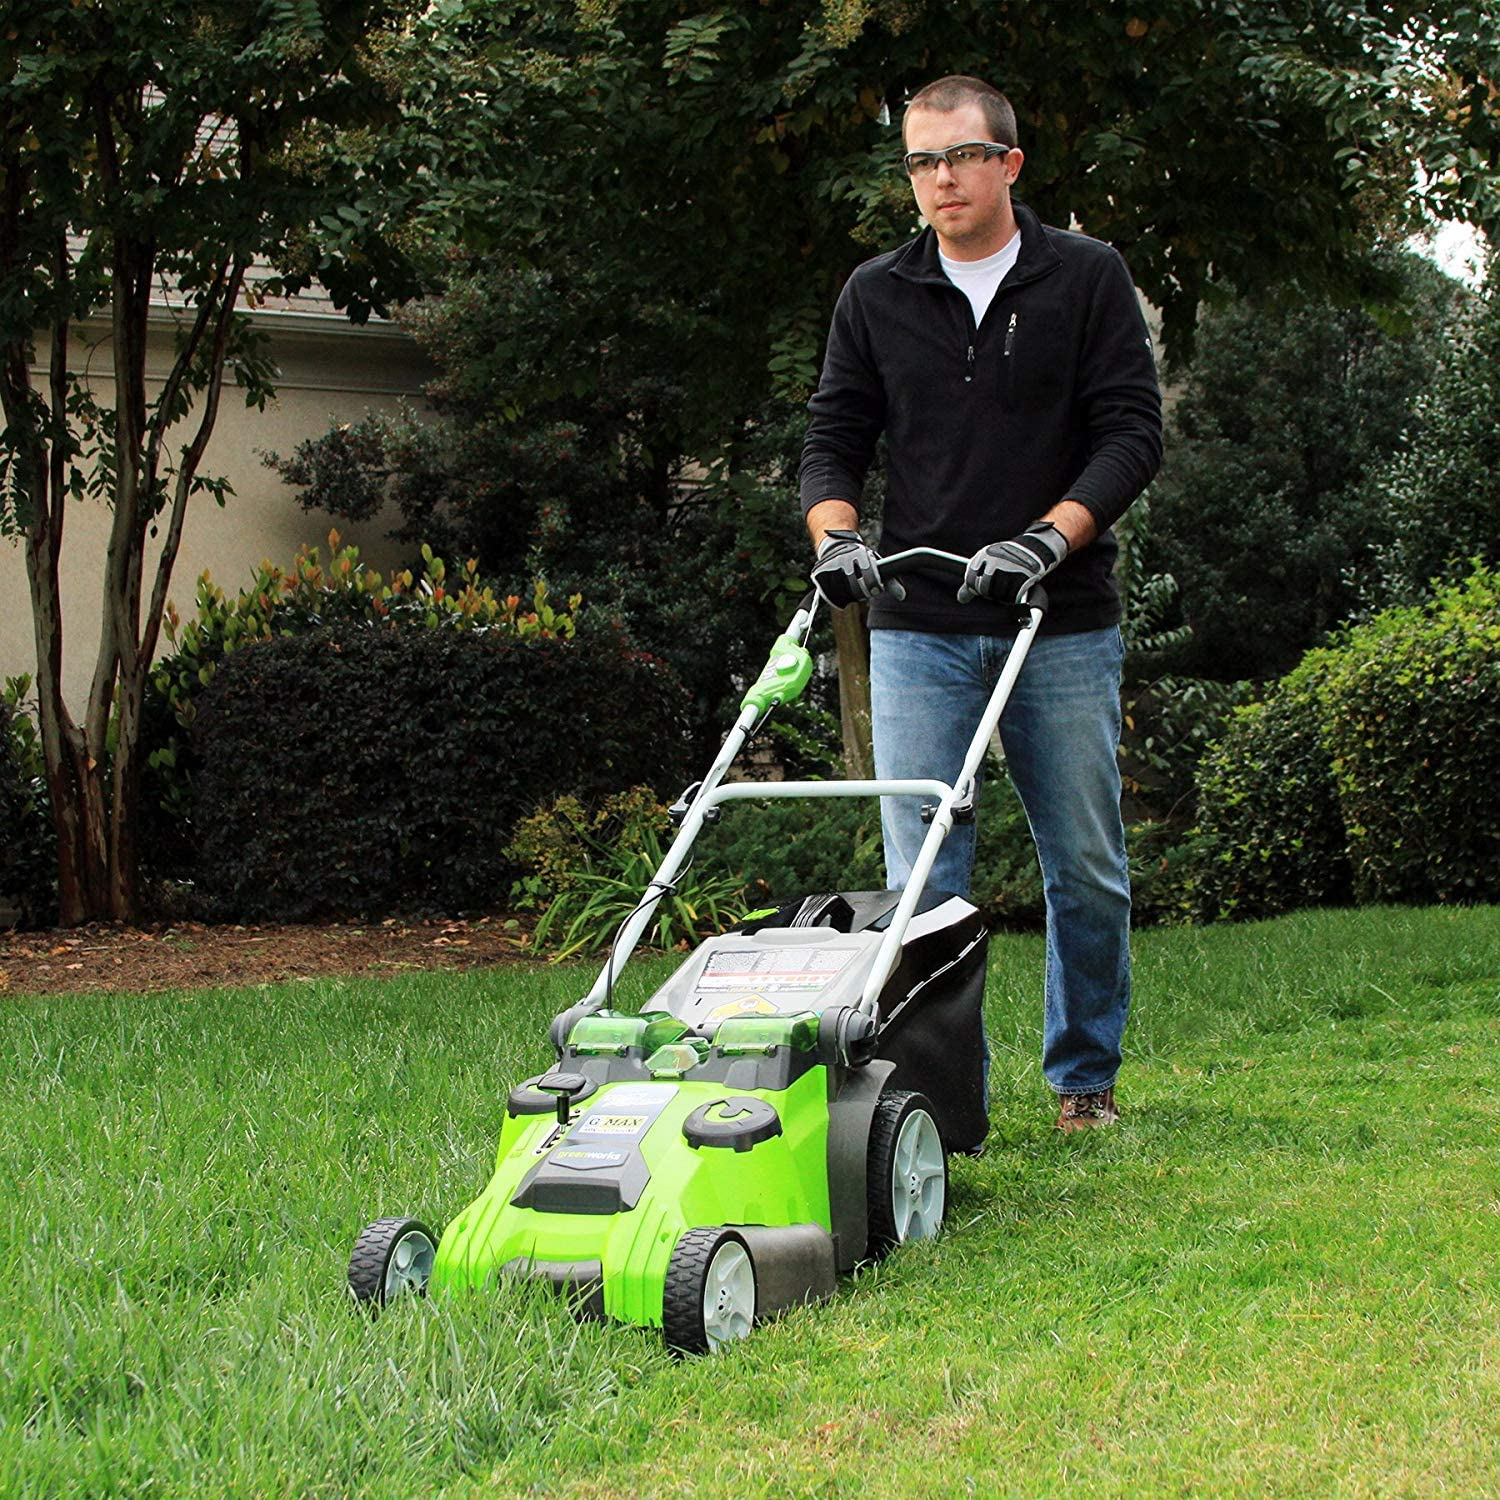 Best Mower For 5 Acres Greenworks 25302 Twin Force Cordless Lawn Mower